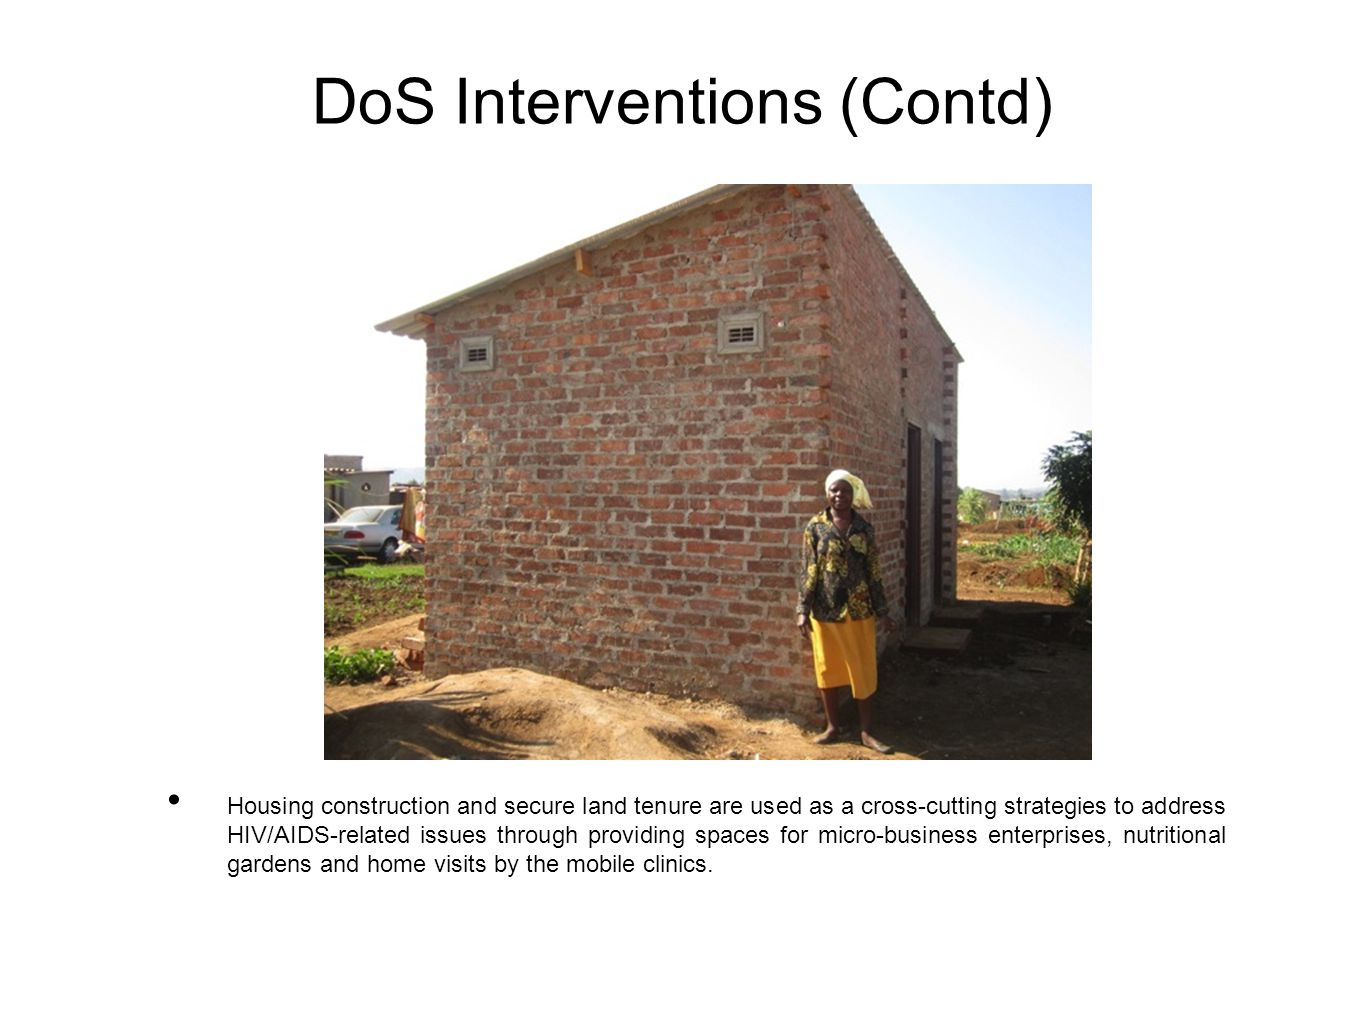 DoS Interventions (Contd) Housing construction and secure land tenure are used as a cross-cutting strategies to address HIV/AIDS-related issues through providing spaces for micro-business enterprises, nutritional gardens and home visits by the mobile clinics.